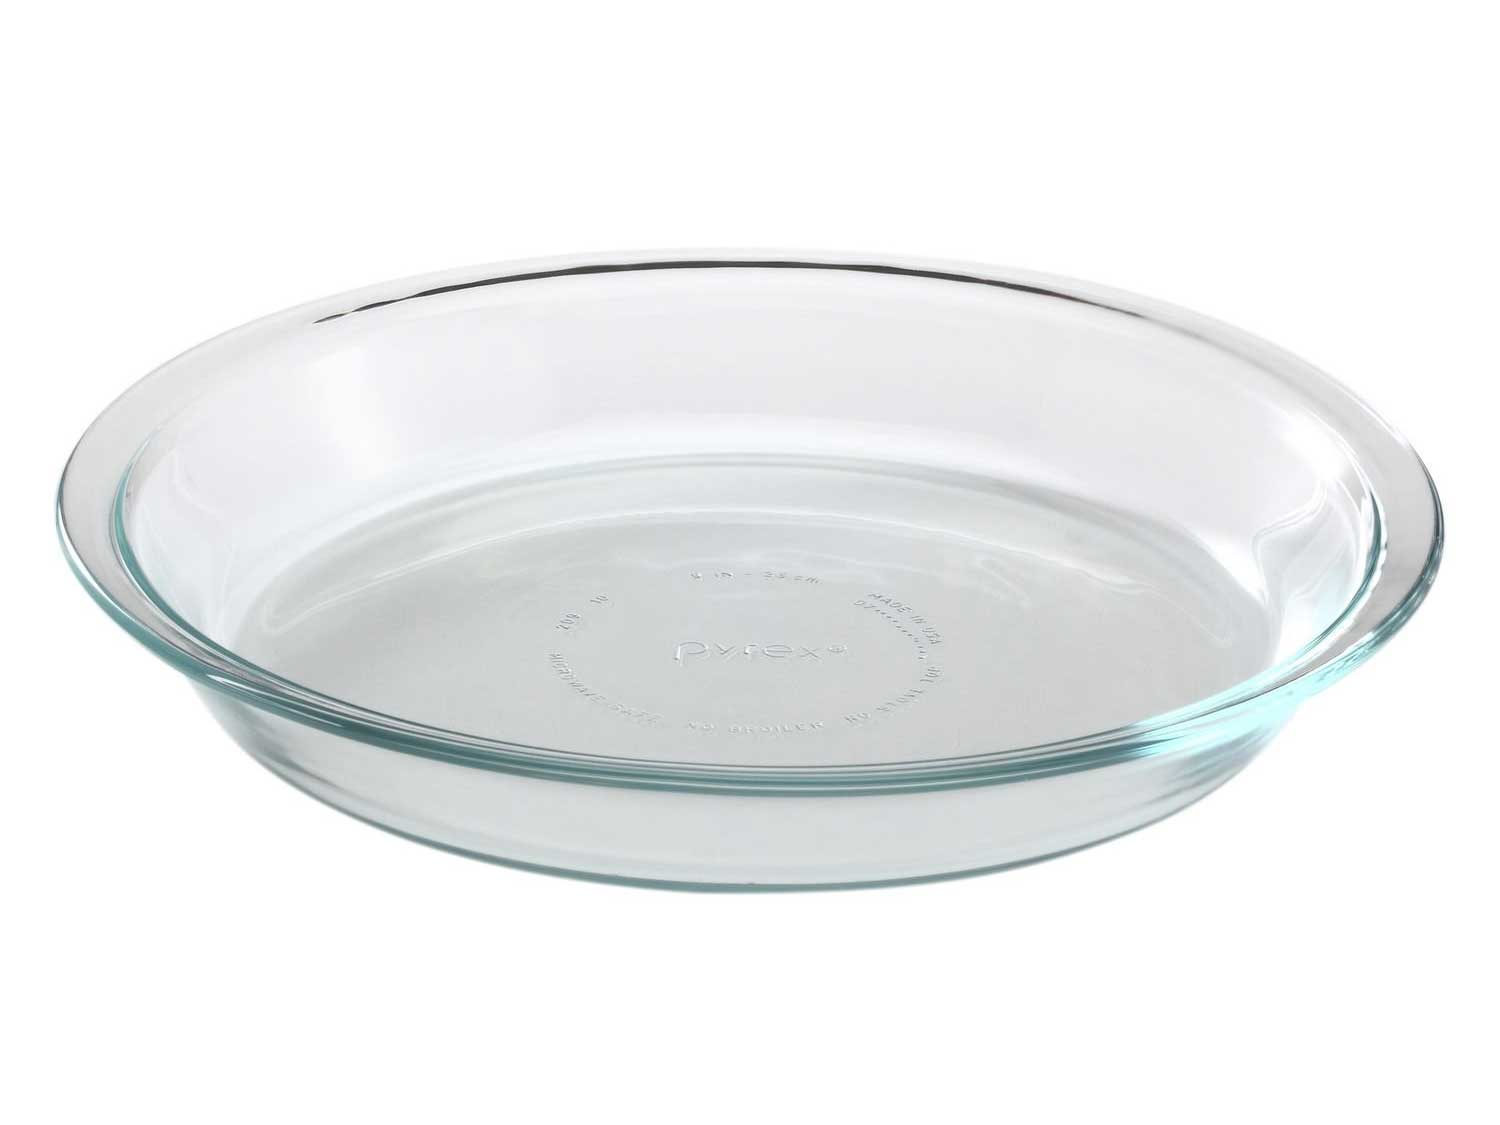 A basic 9-inch glass pie plate from Pyrex.